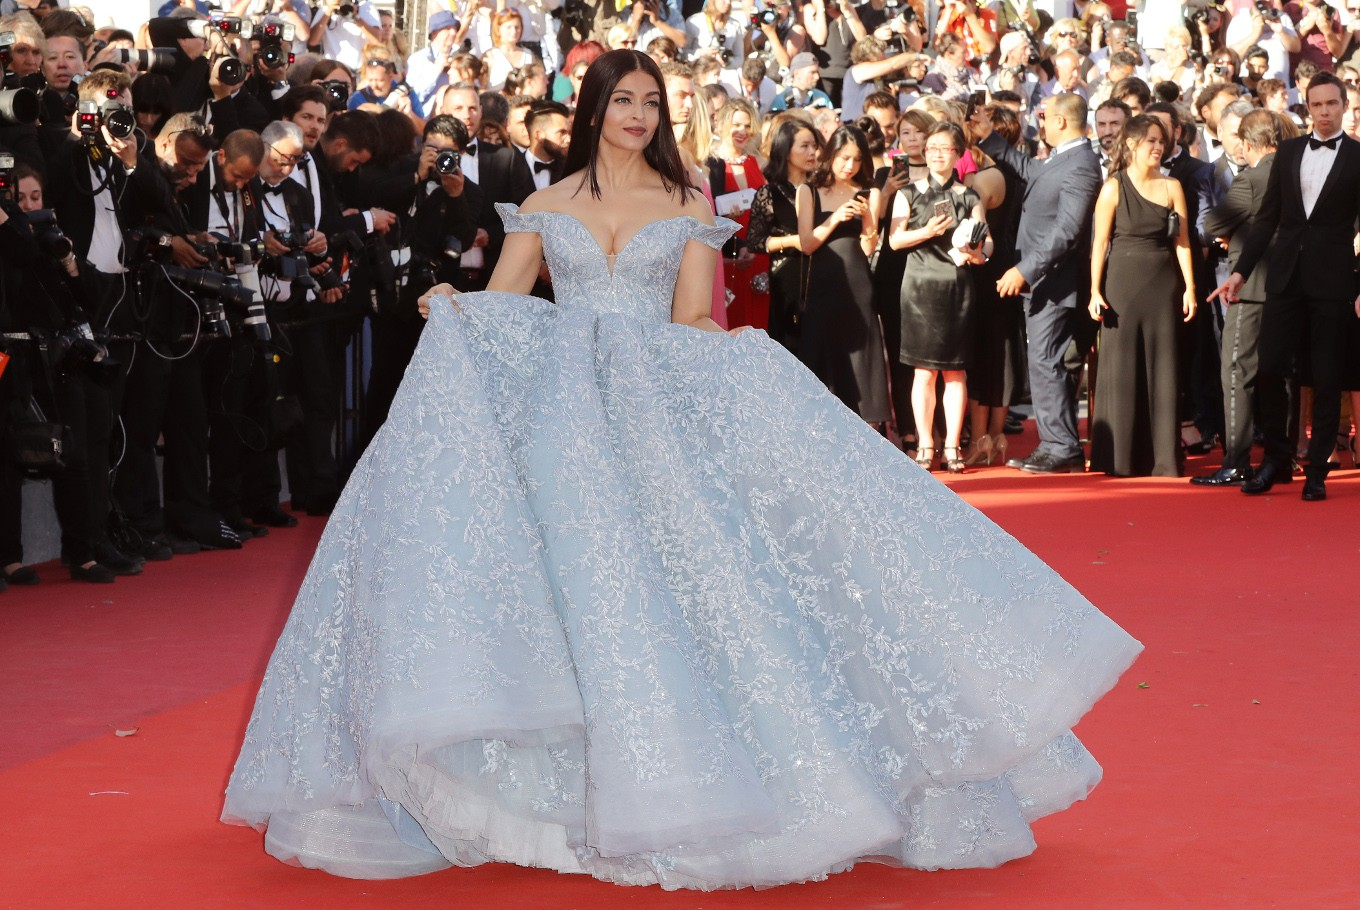 Six red carpet looks that turned heads at Cannes - Lifestyle - The ...